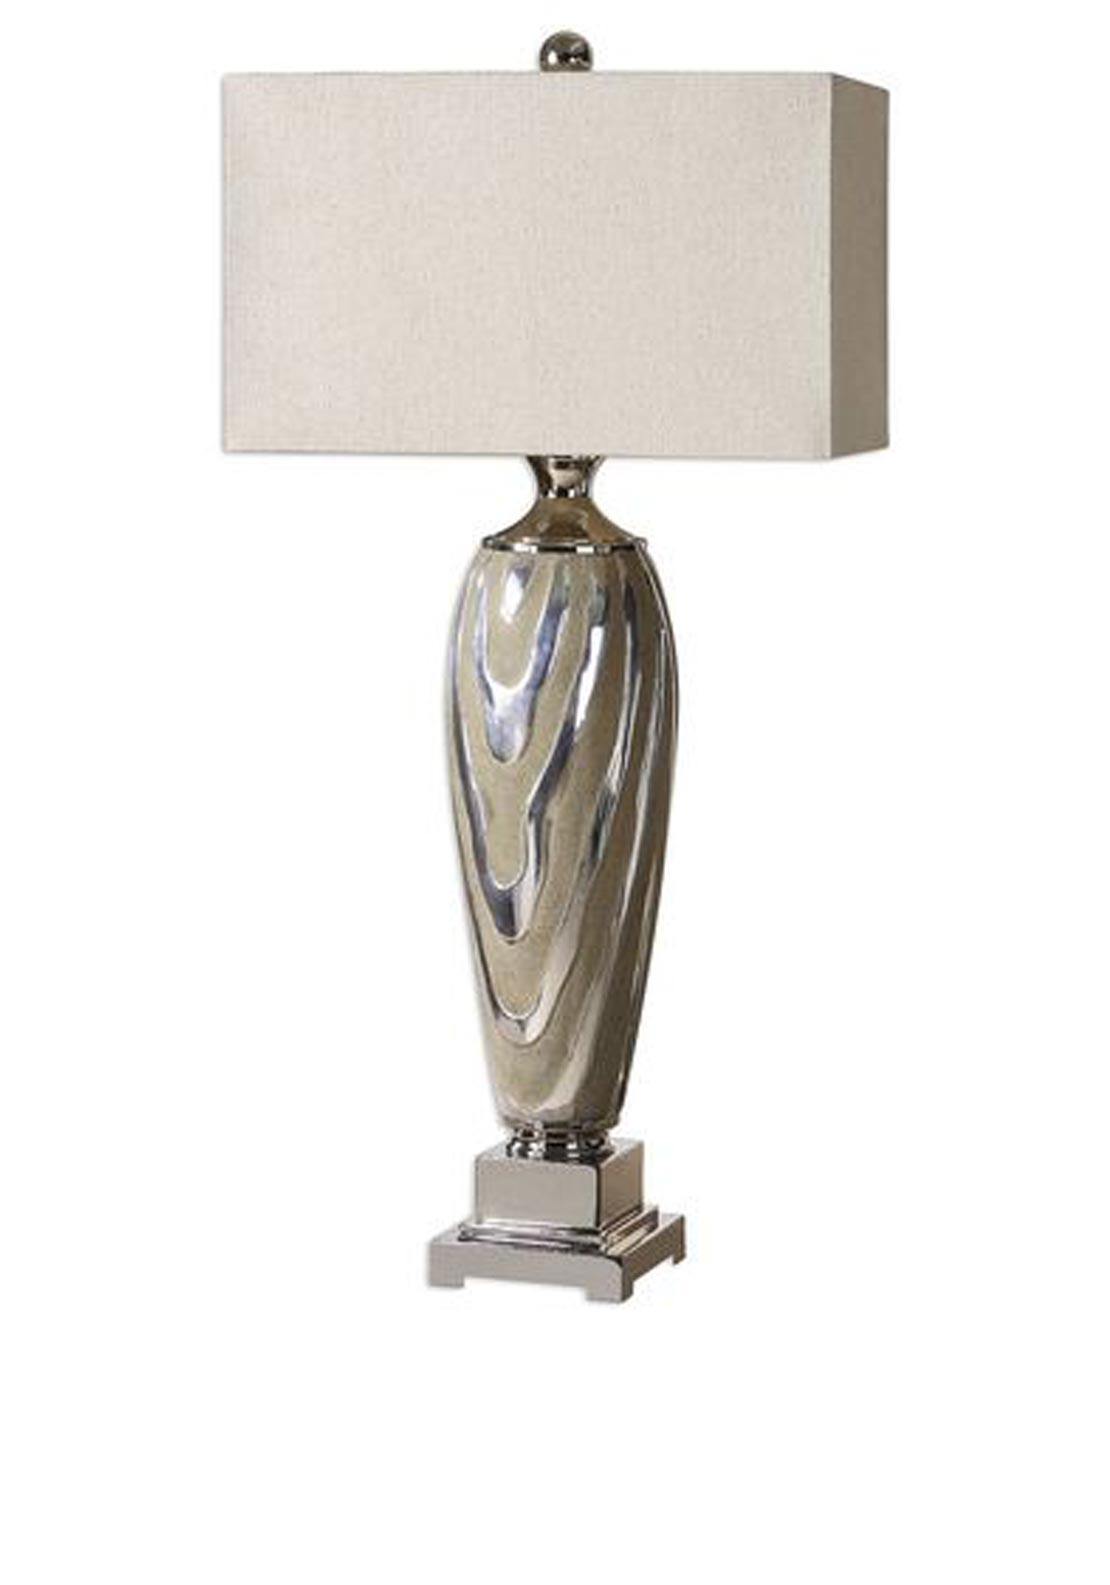 Mindy Brownes Allegheny Lamp and Shade